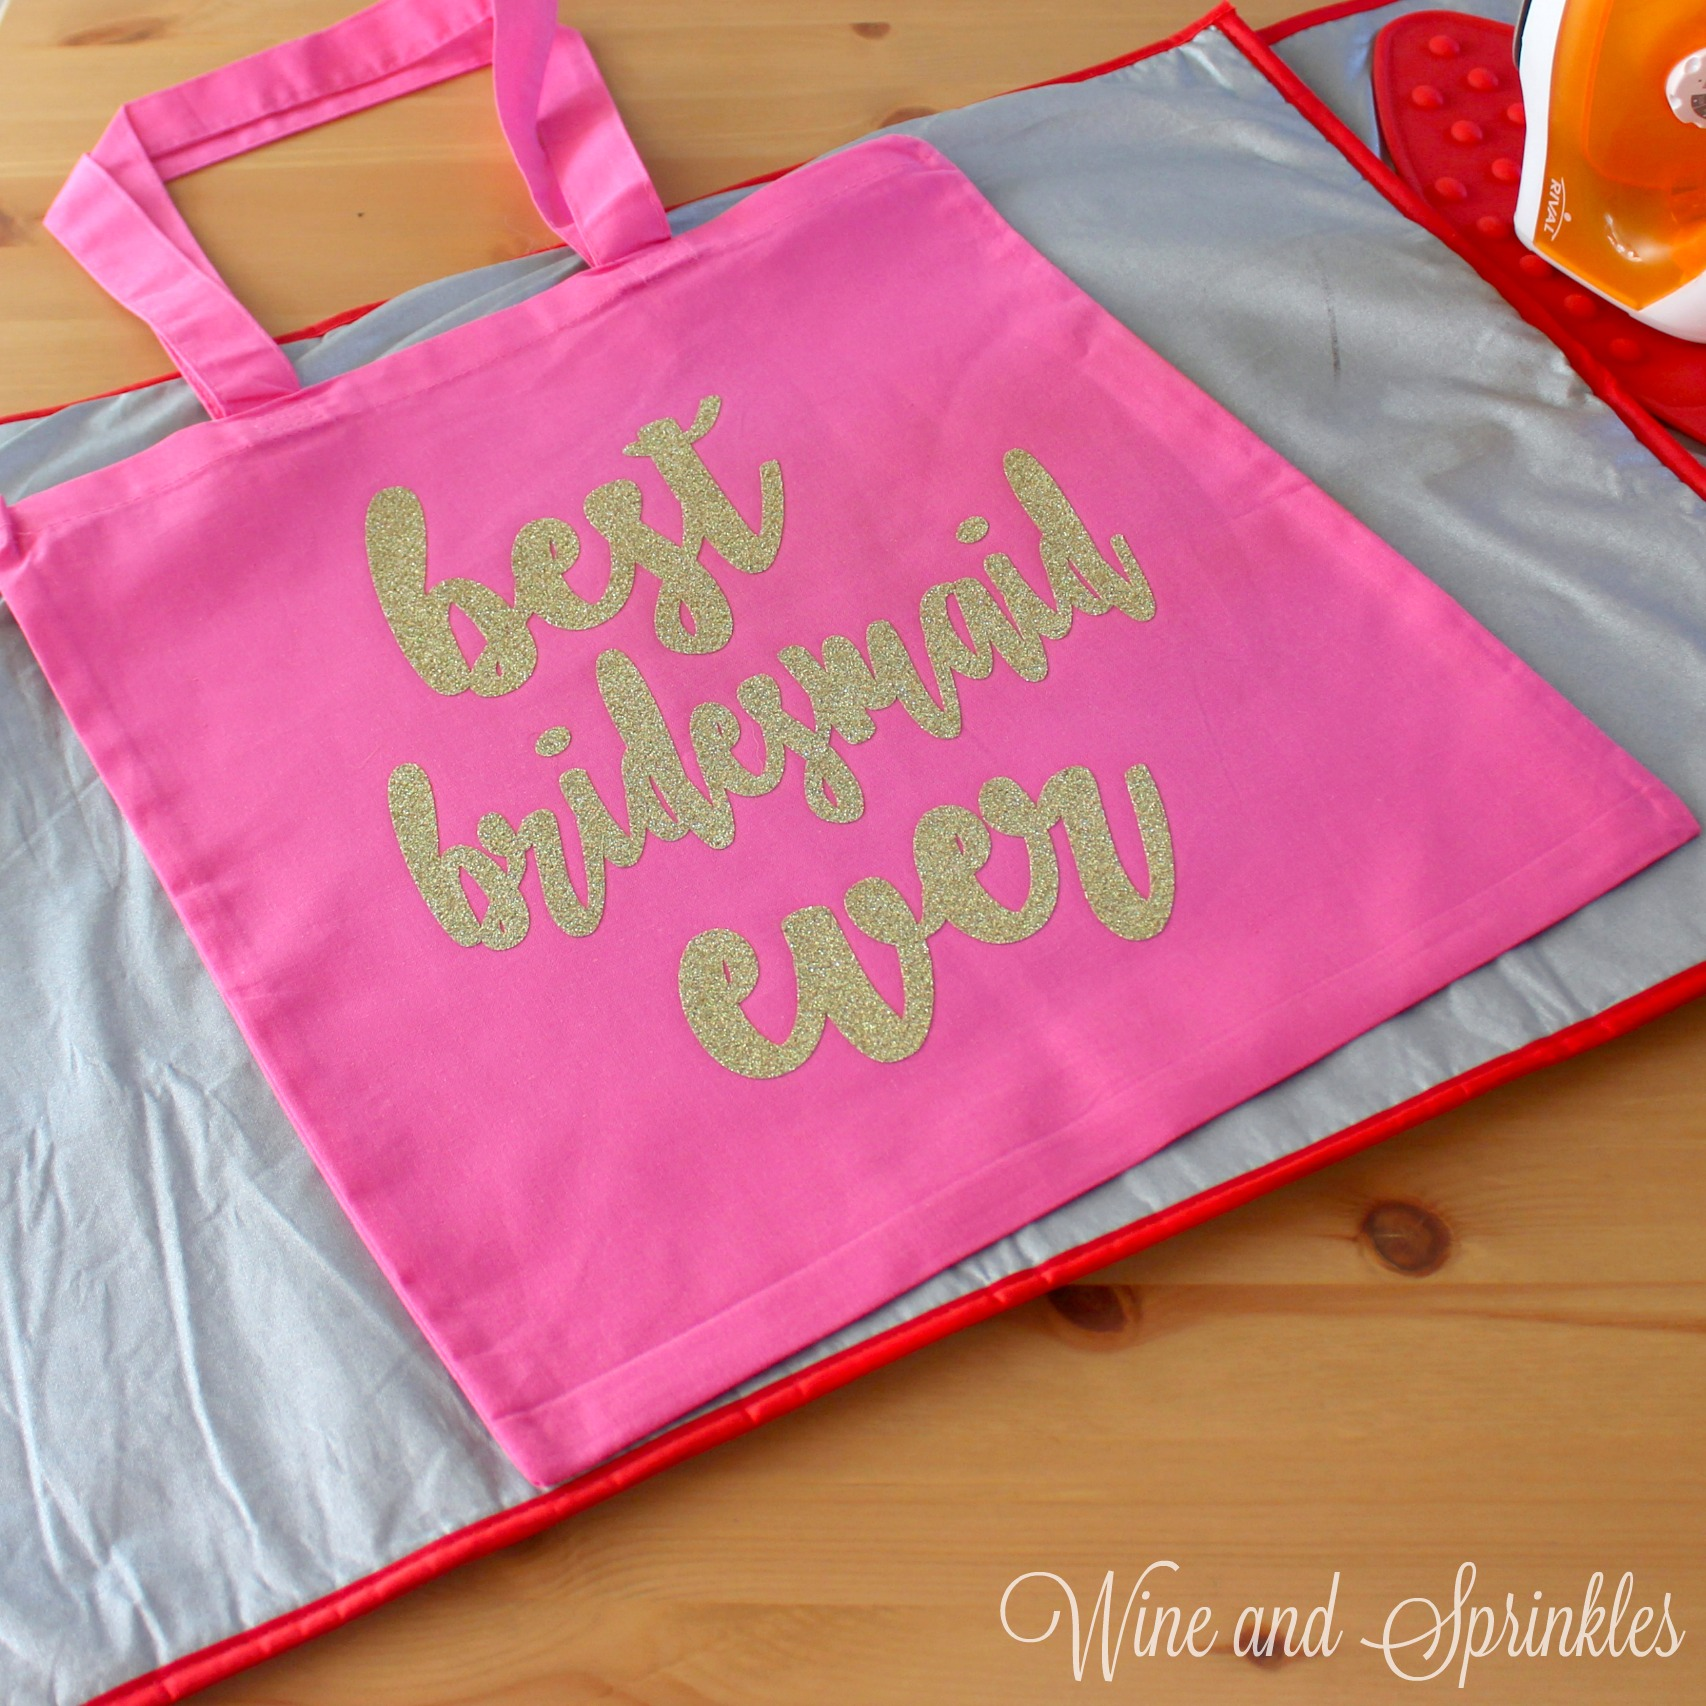 DIY HTV Iron On Best Bridesmaid Ever Getting Ready Wedding Tote Bags #svgfiles #totebags #bridesmaidgifts